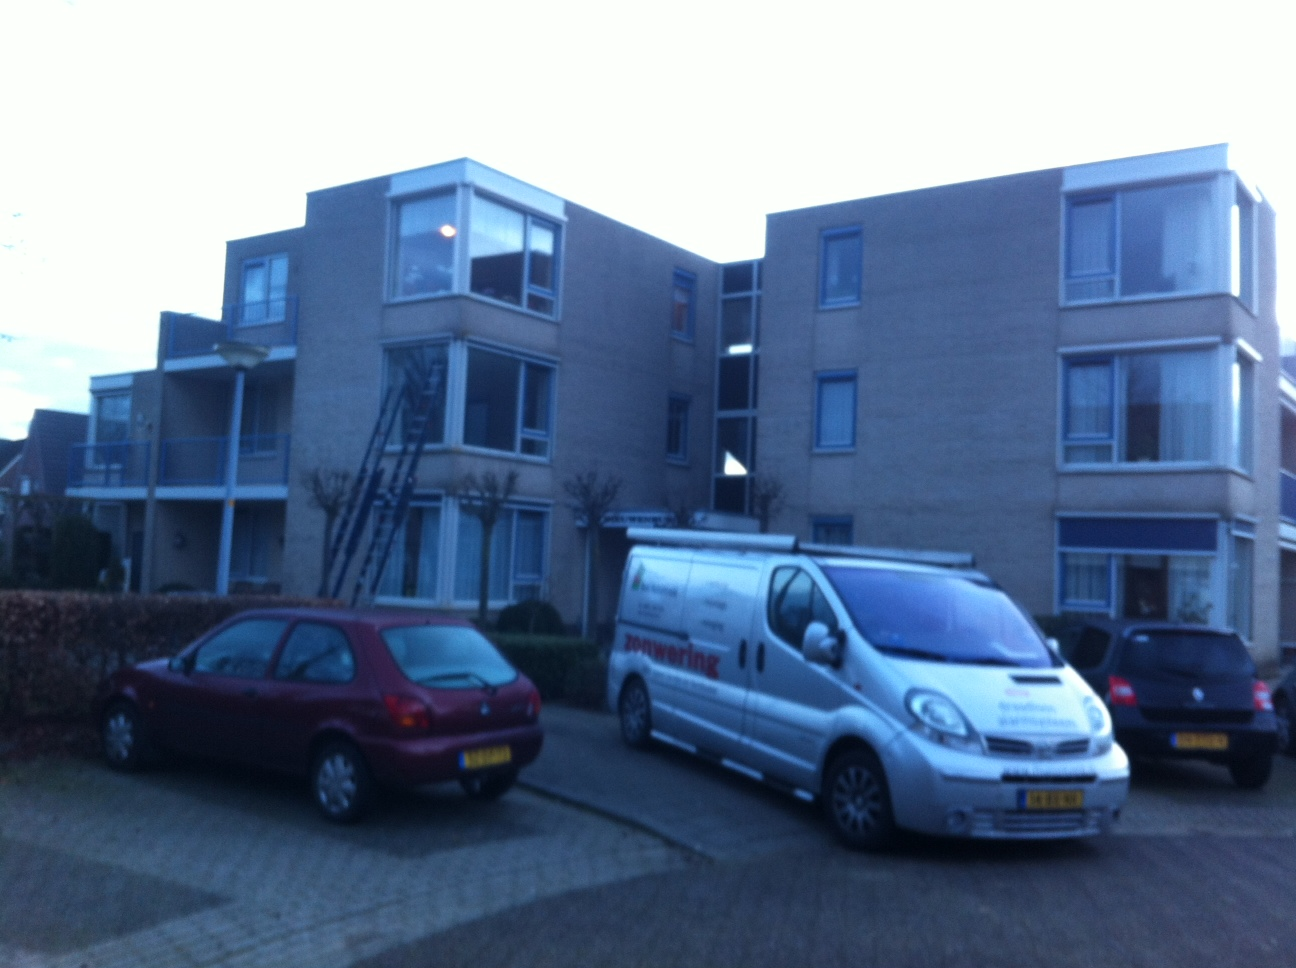 Zonwering project de Nieuwenburgh in Doornenburg